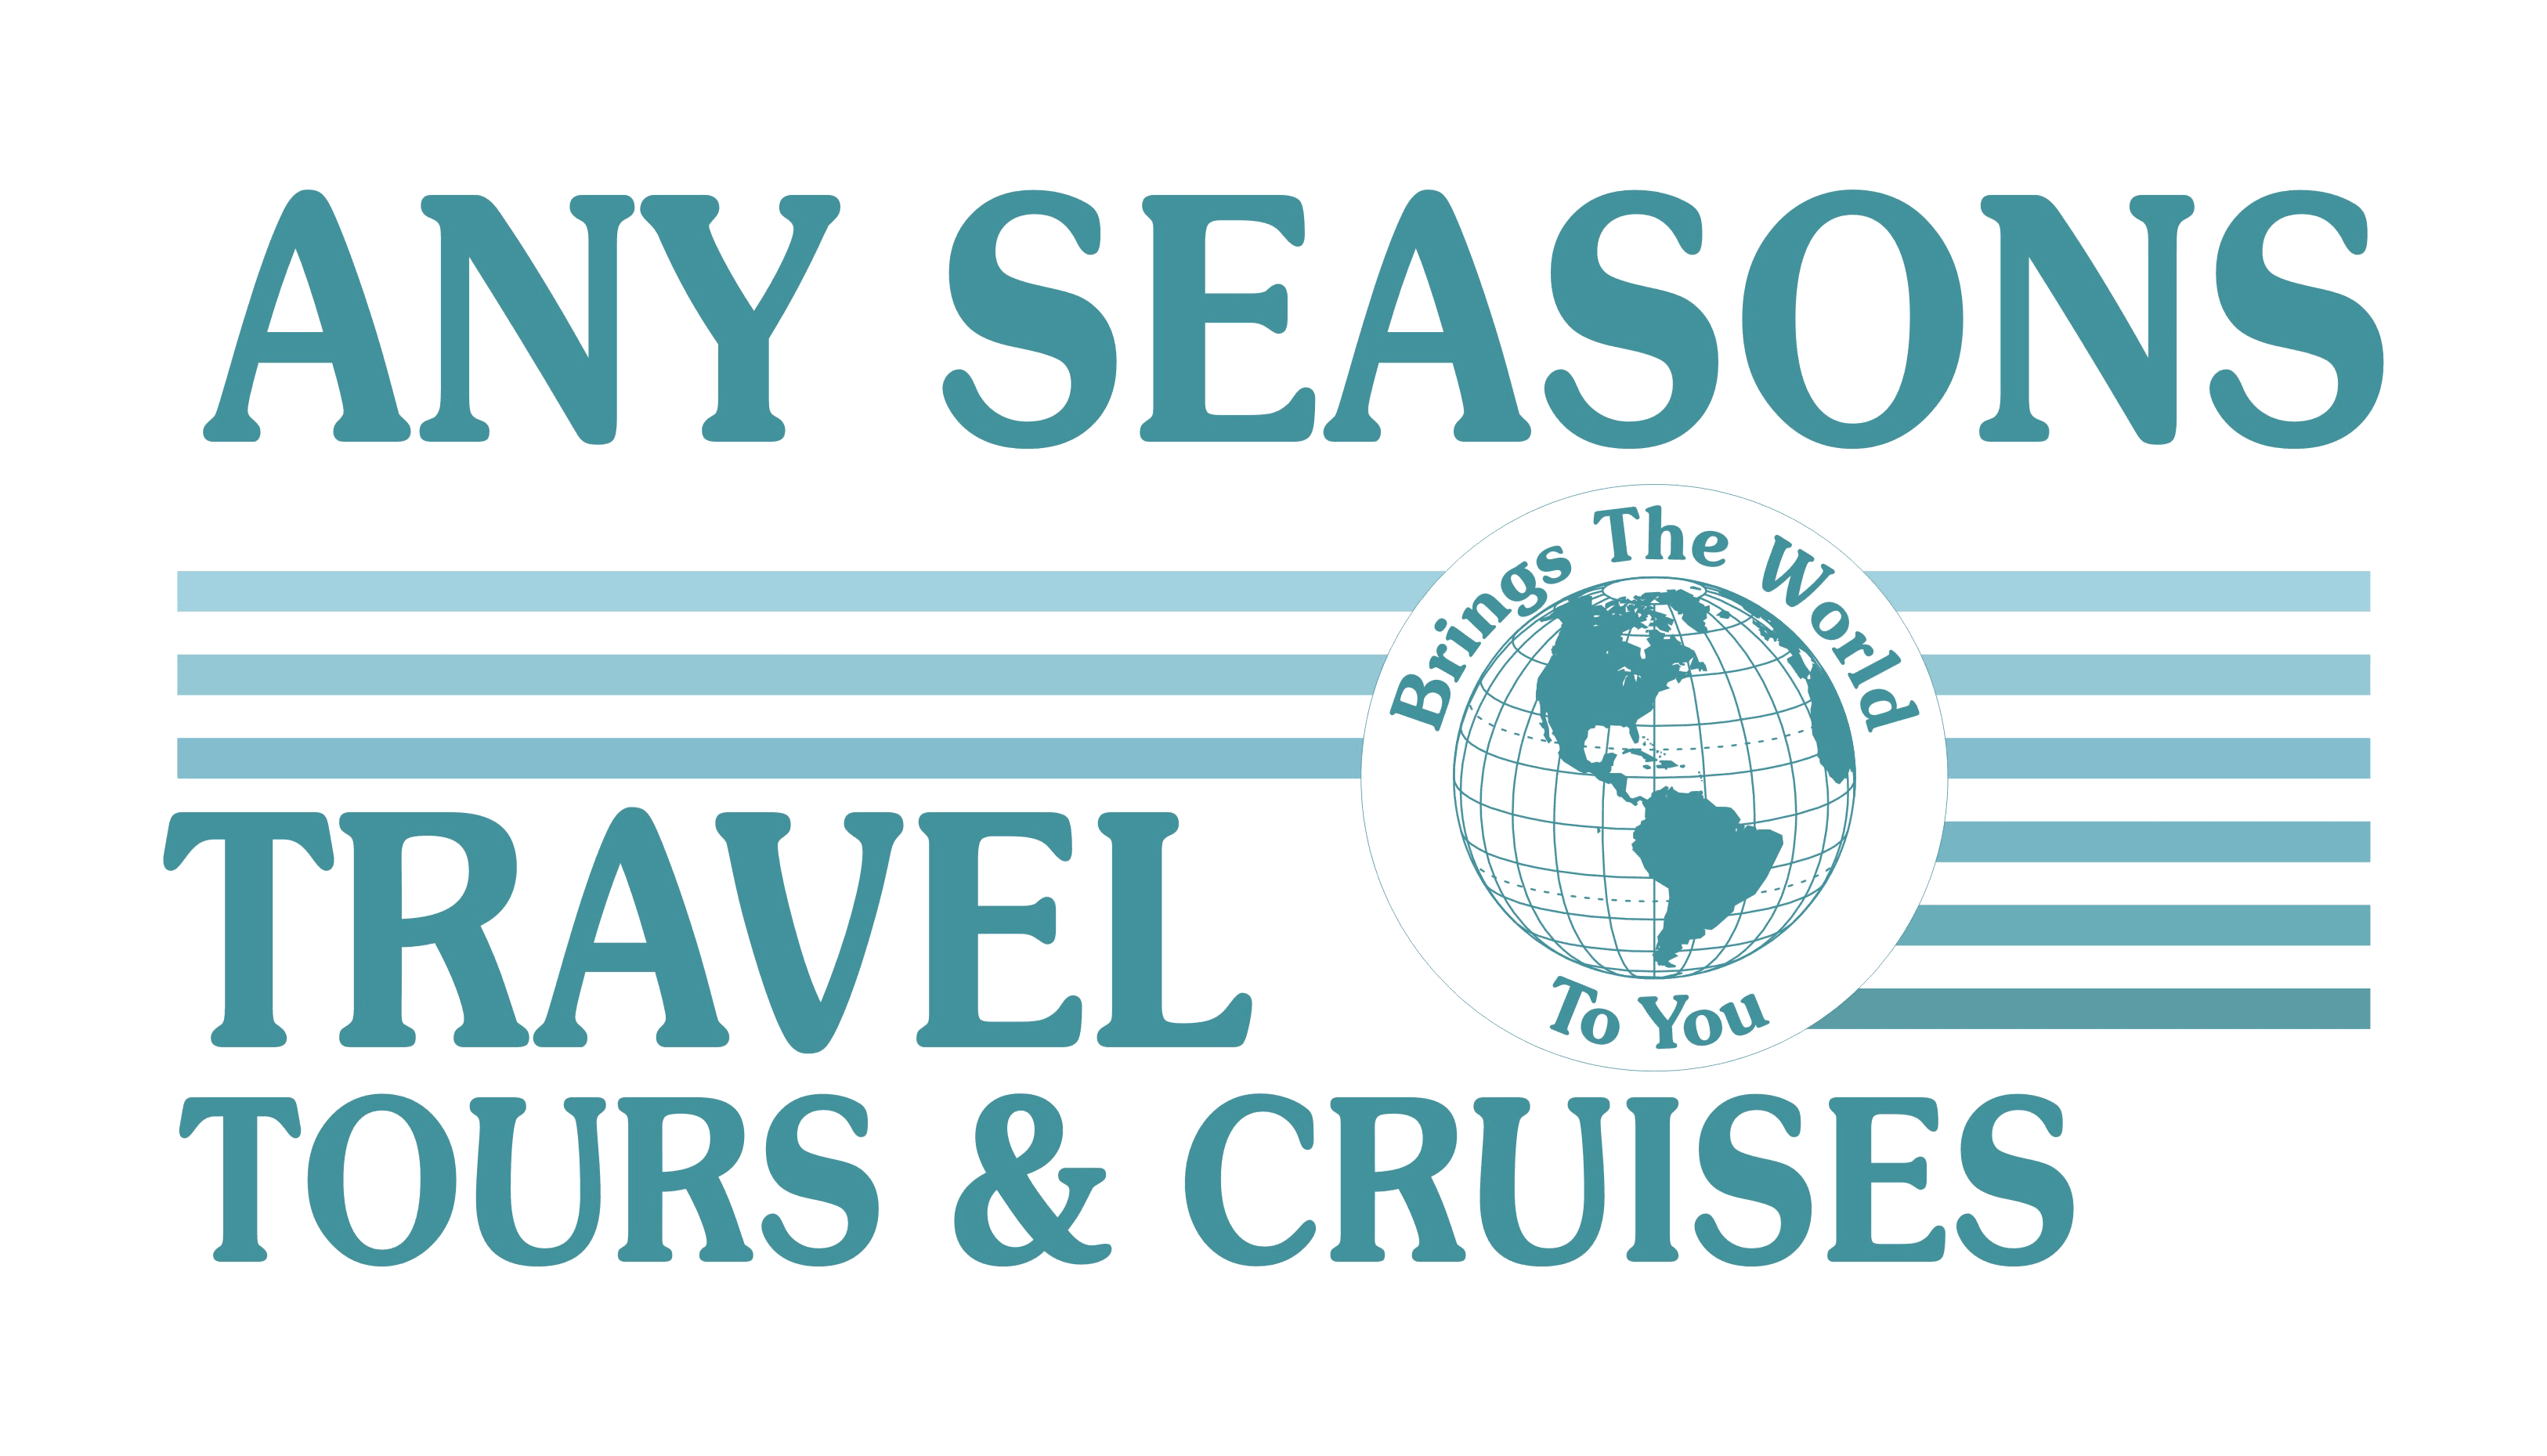 Any Seasons Travel